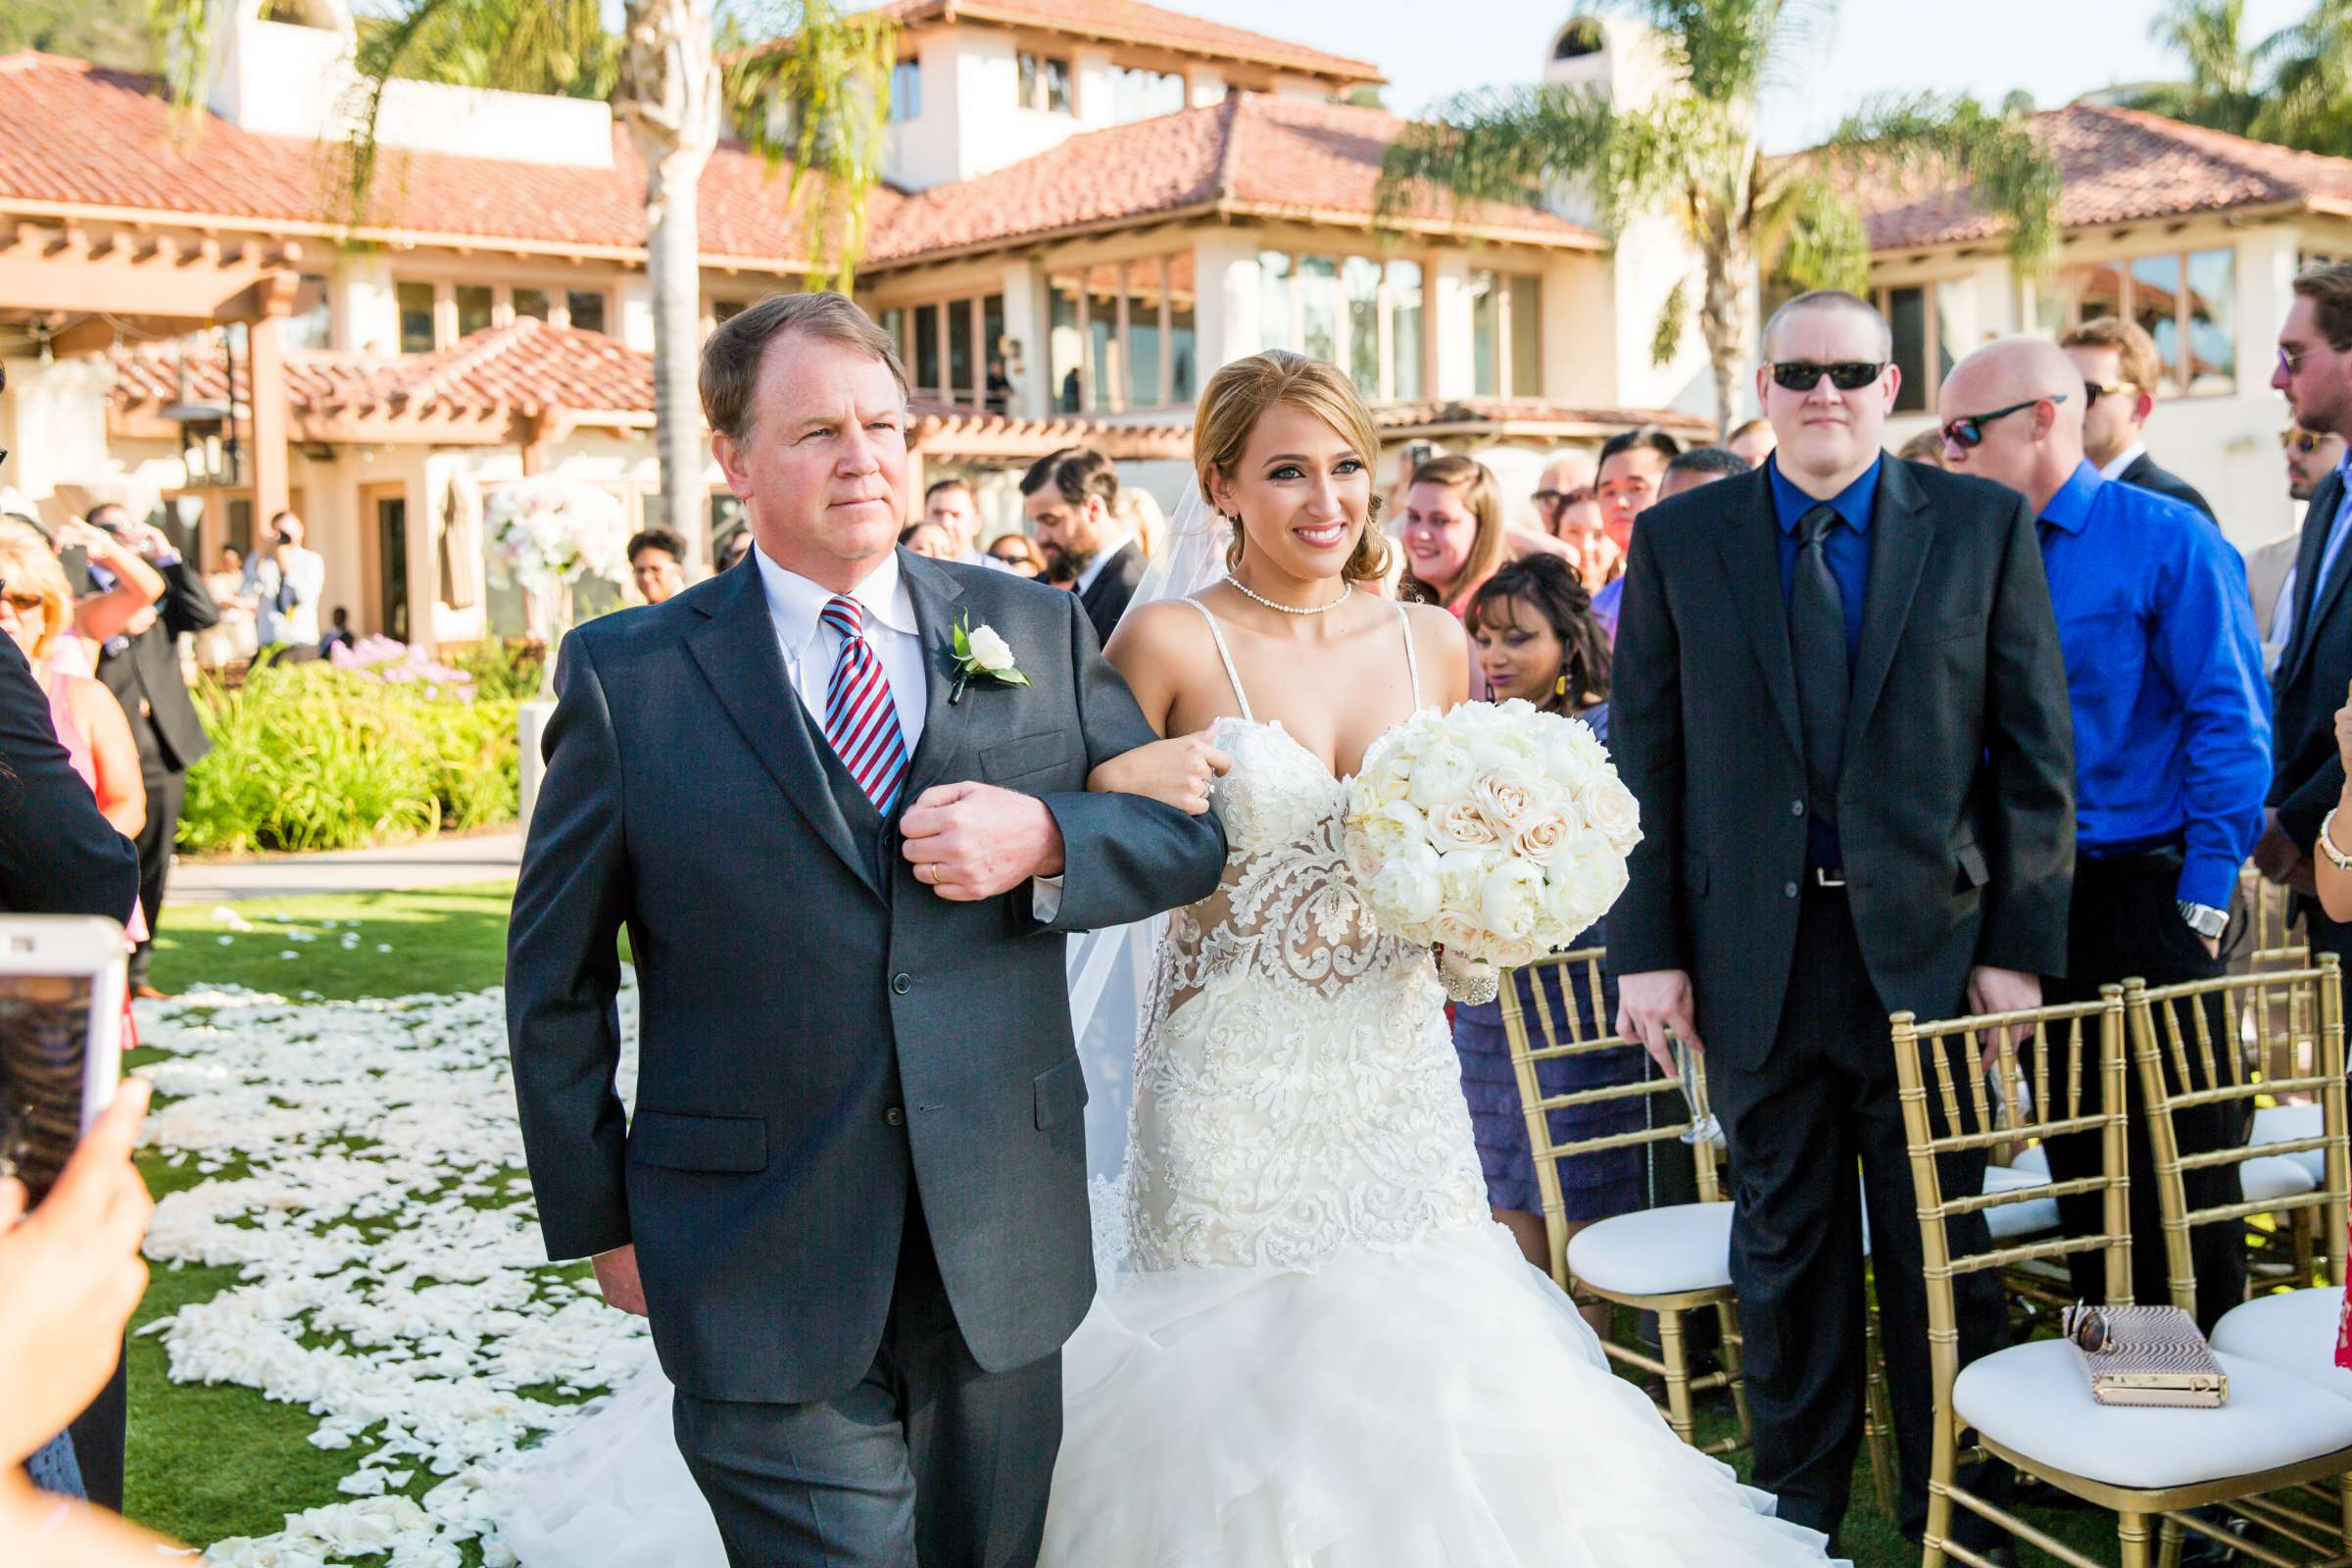 Fairbanks Ranch Country Club Wedding coordinated by Monarch Weddings, Gabriella and Kyle Wedding Photo #84 by True Photography